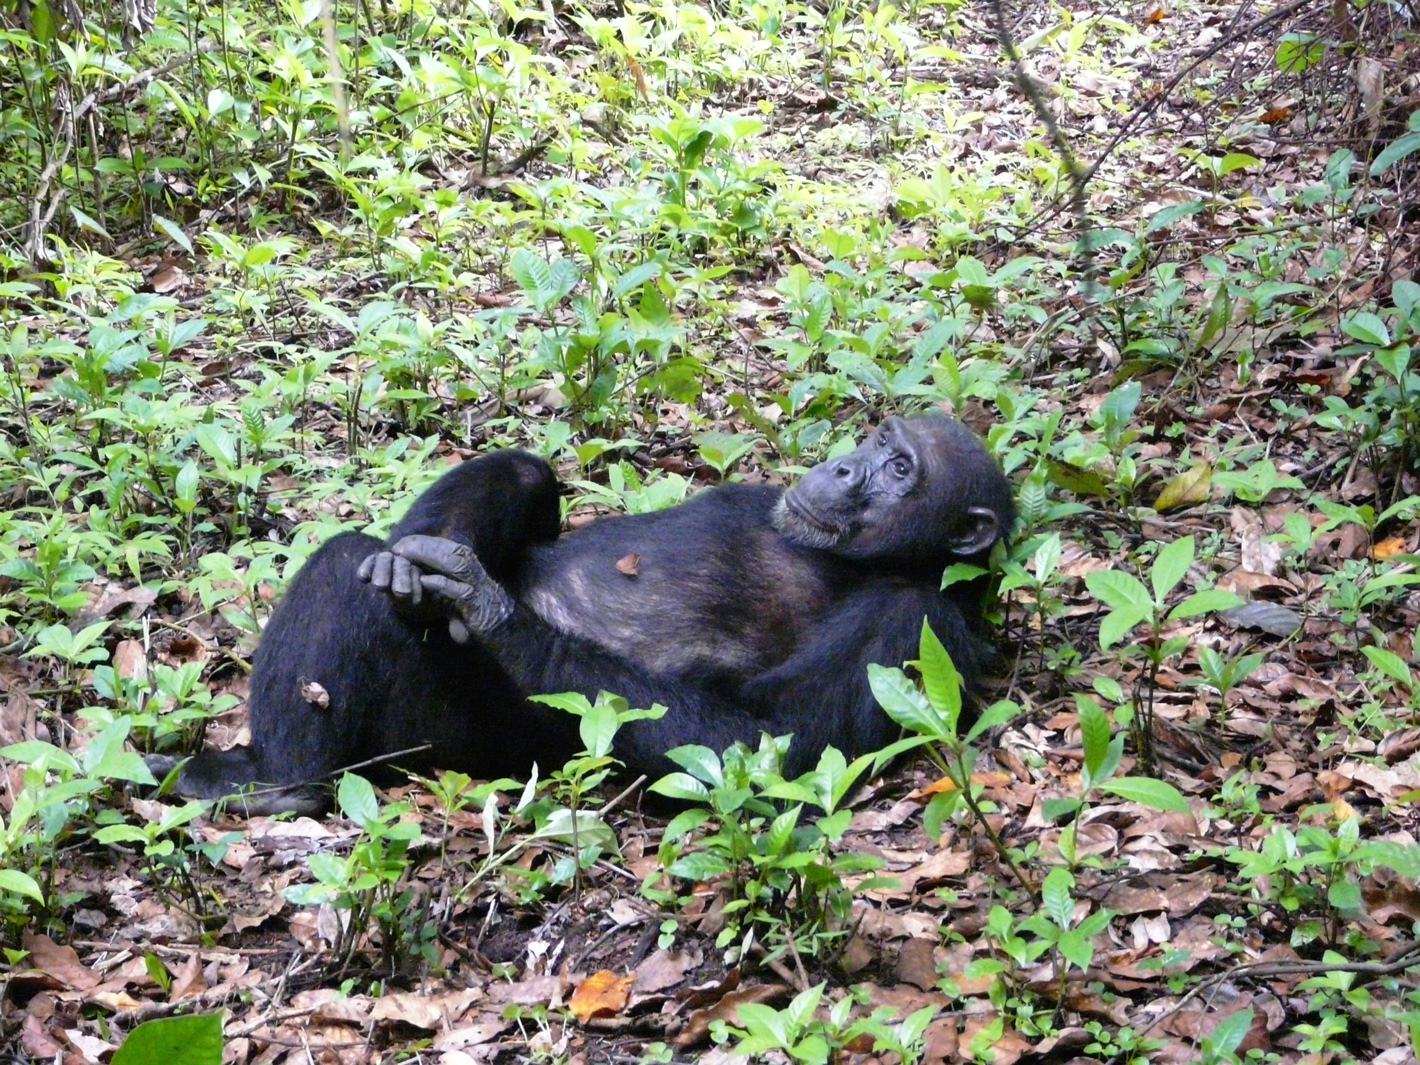 Chimpanzee in Mahale National Park Tanzania